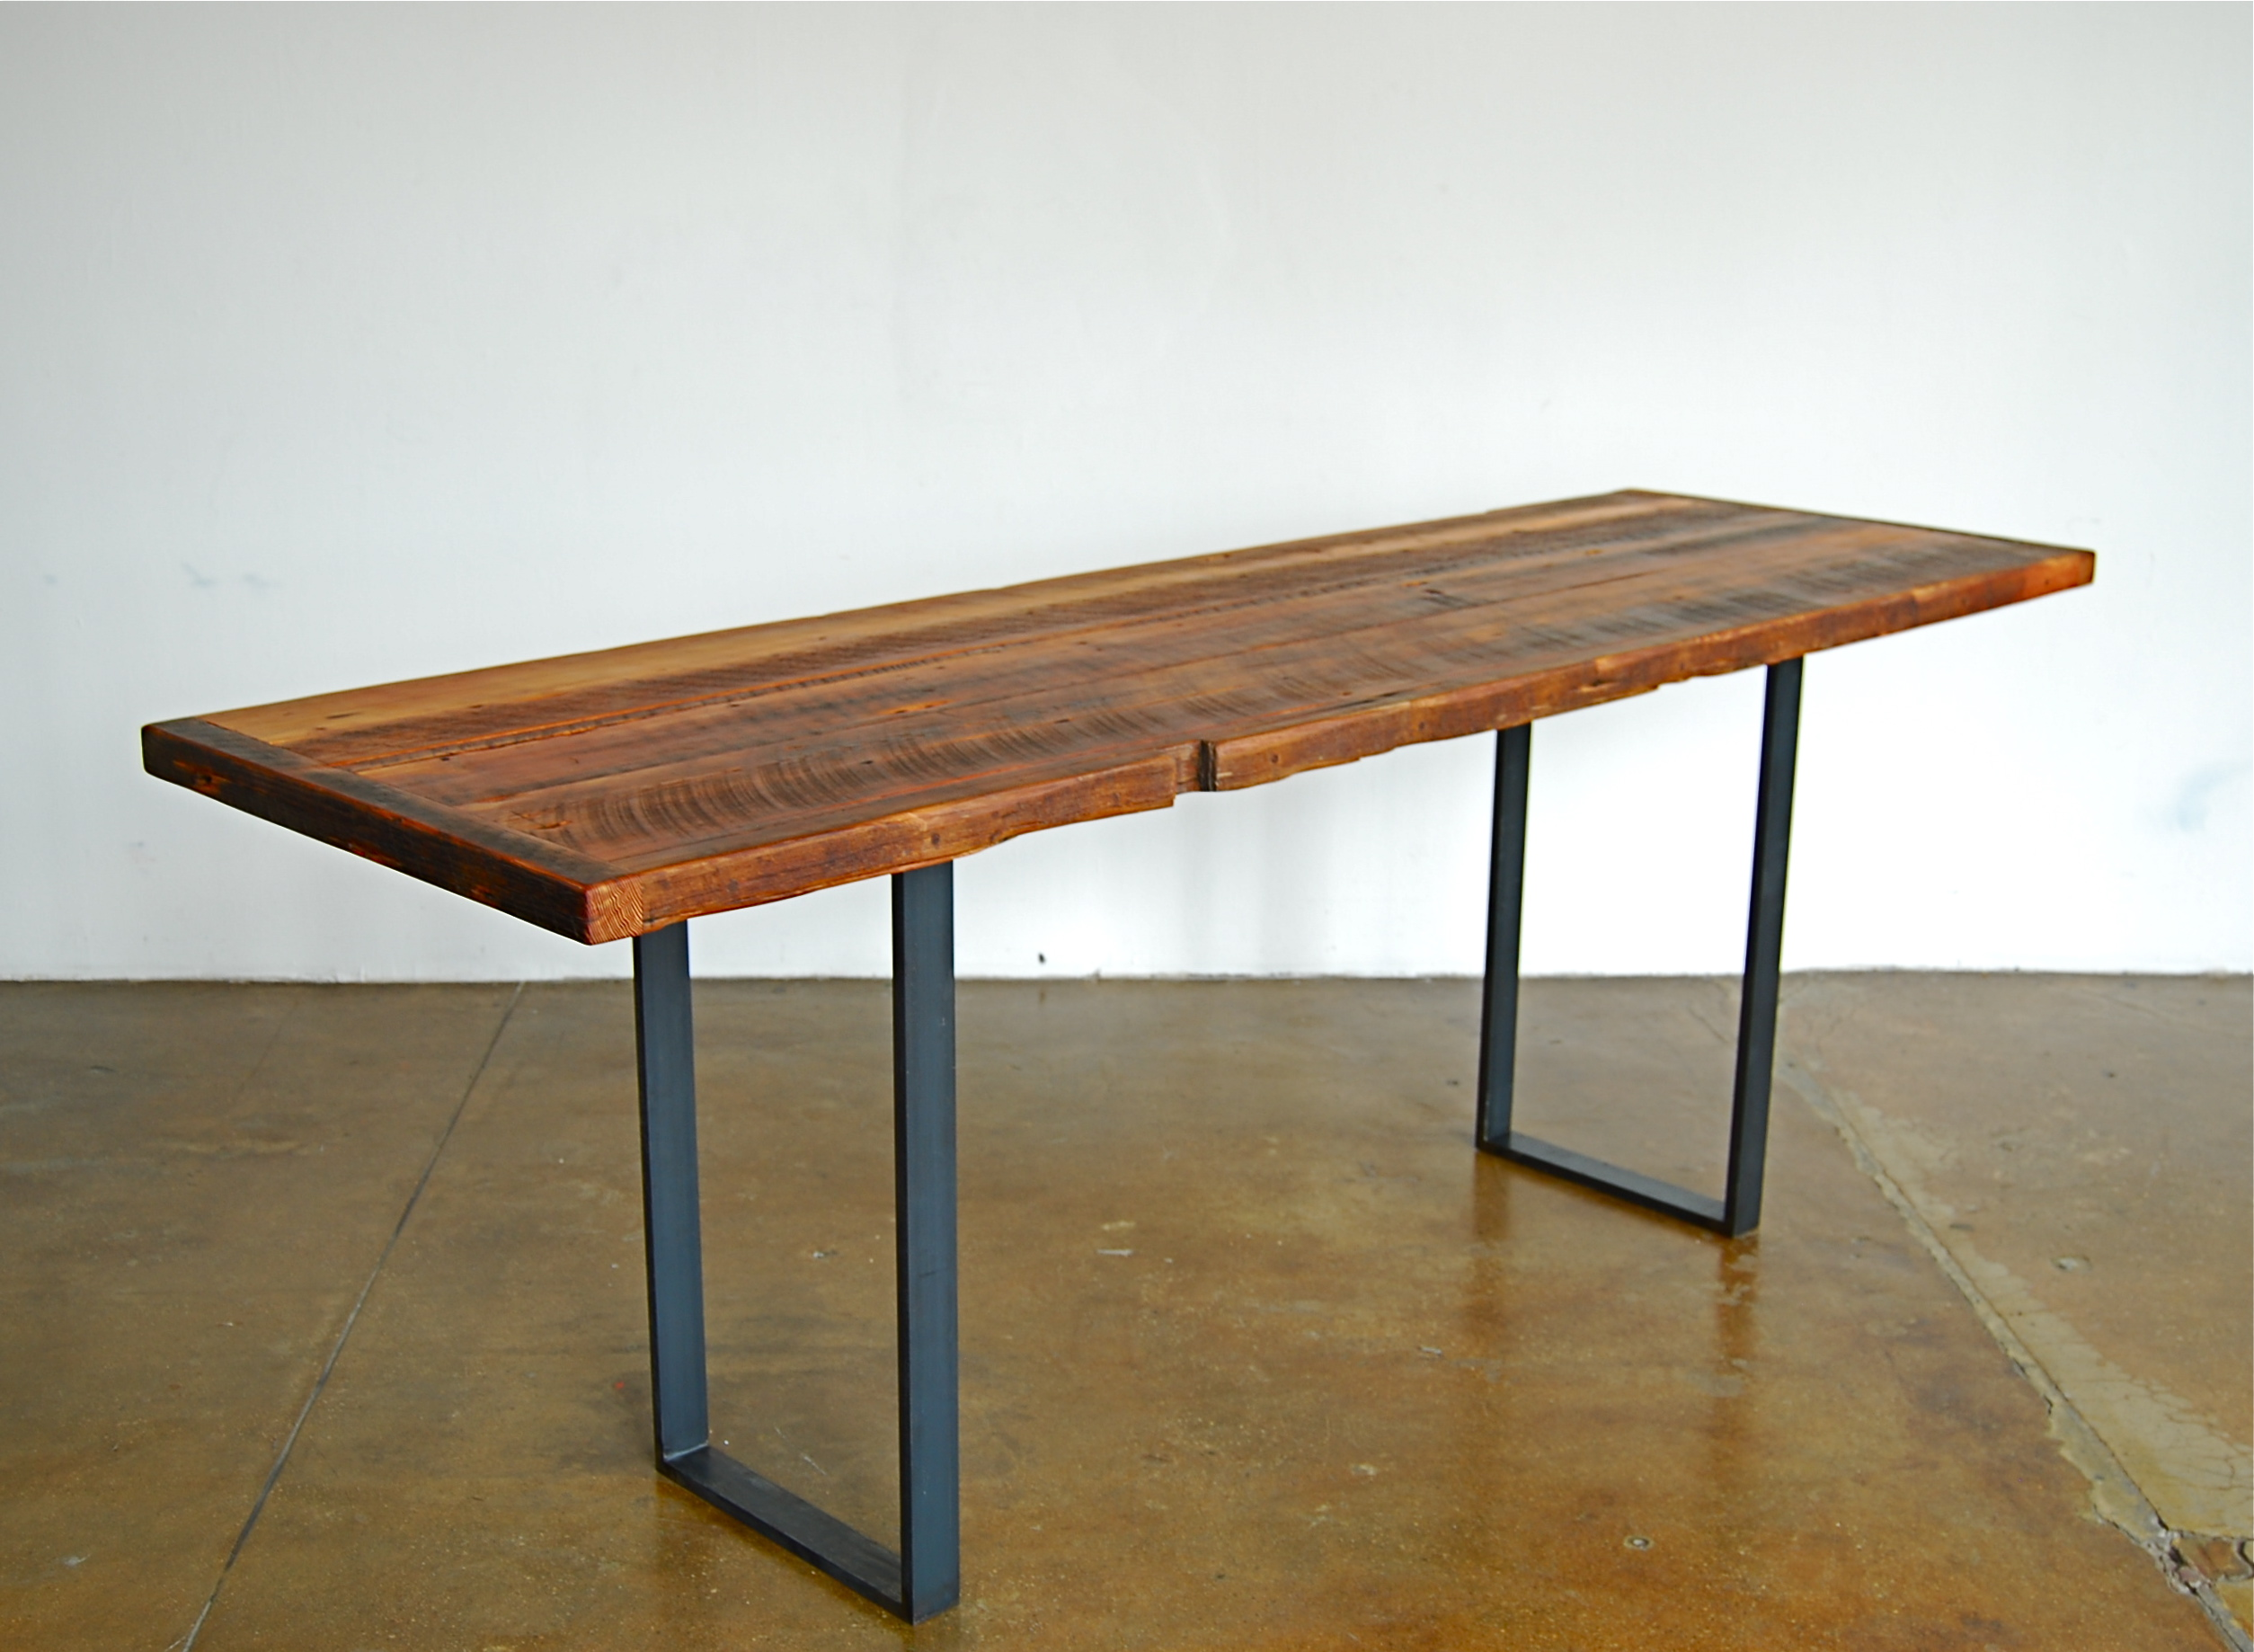 ... Tables, Counter Heights, Dining TableS, Galley Kitchens, Dining